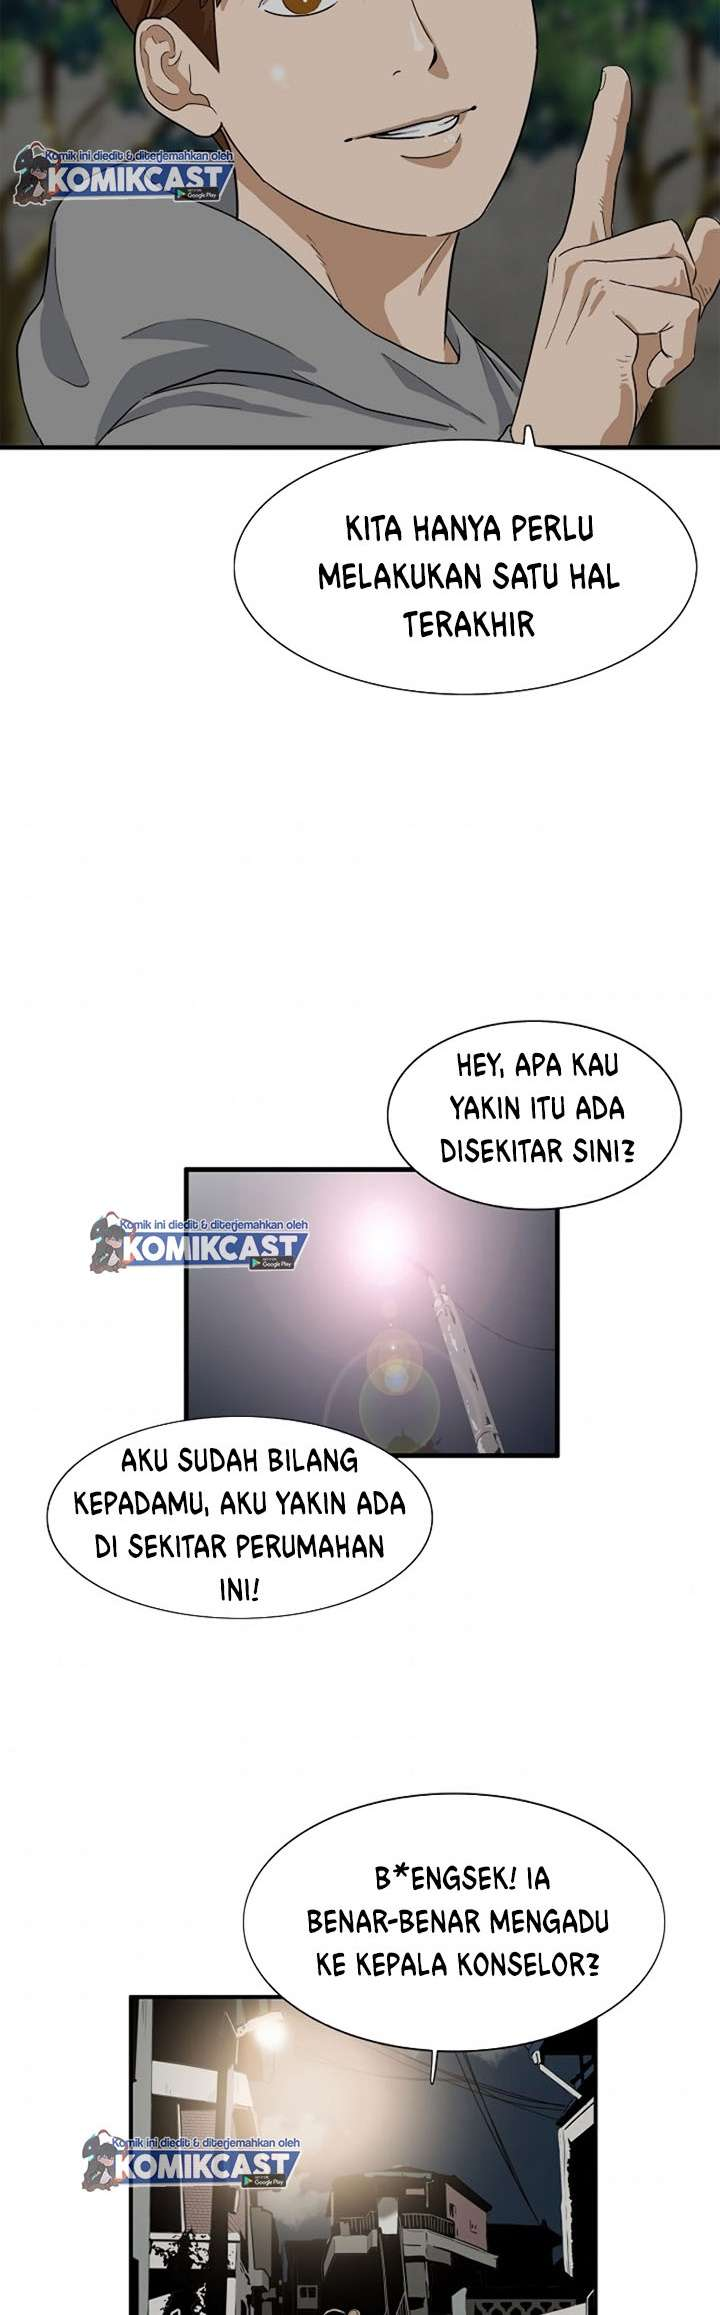 This is the Law Chapter 02 Bahasa Indonesia page 79